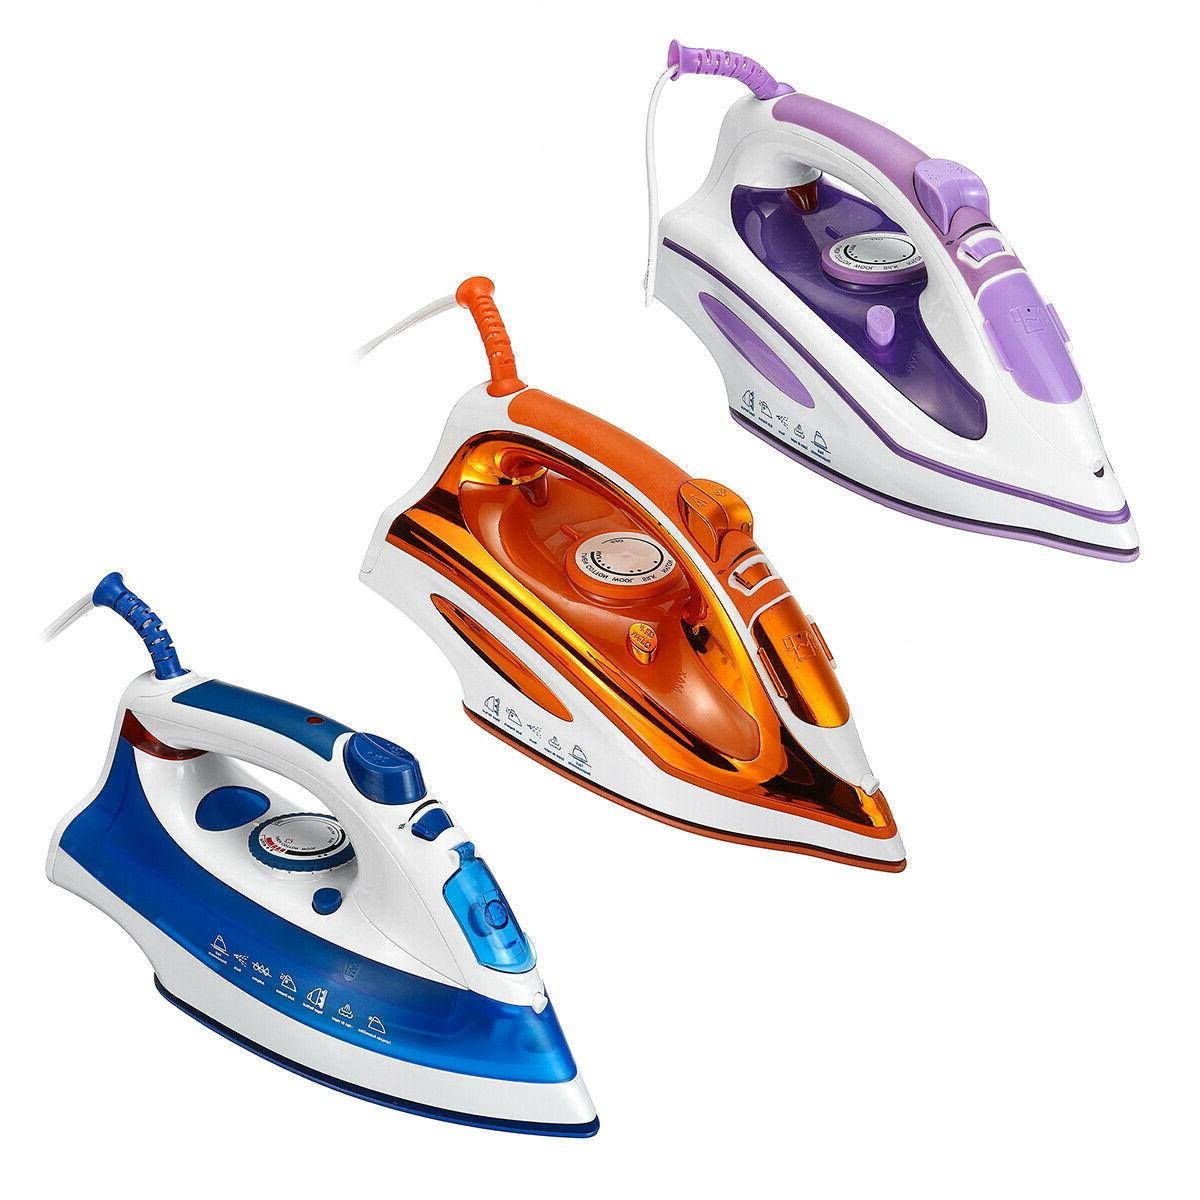 110v 1200w 280ml handheld electric clothes iron